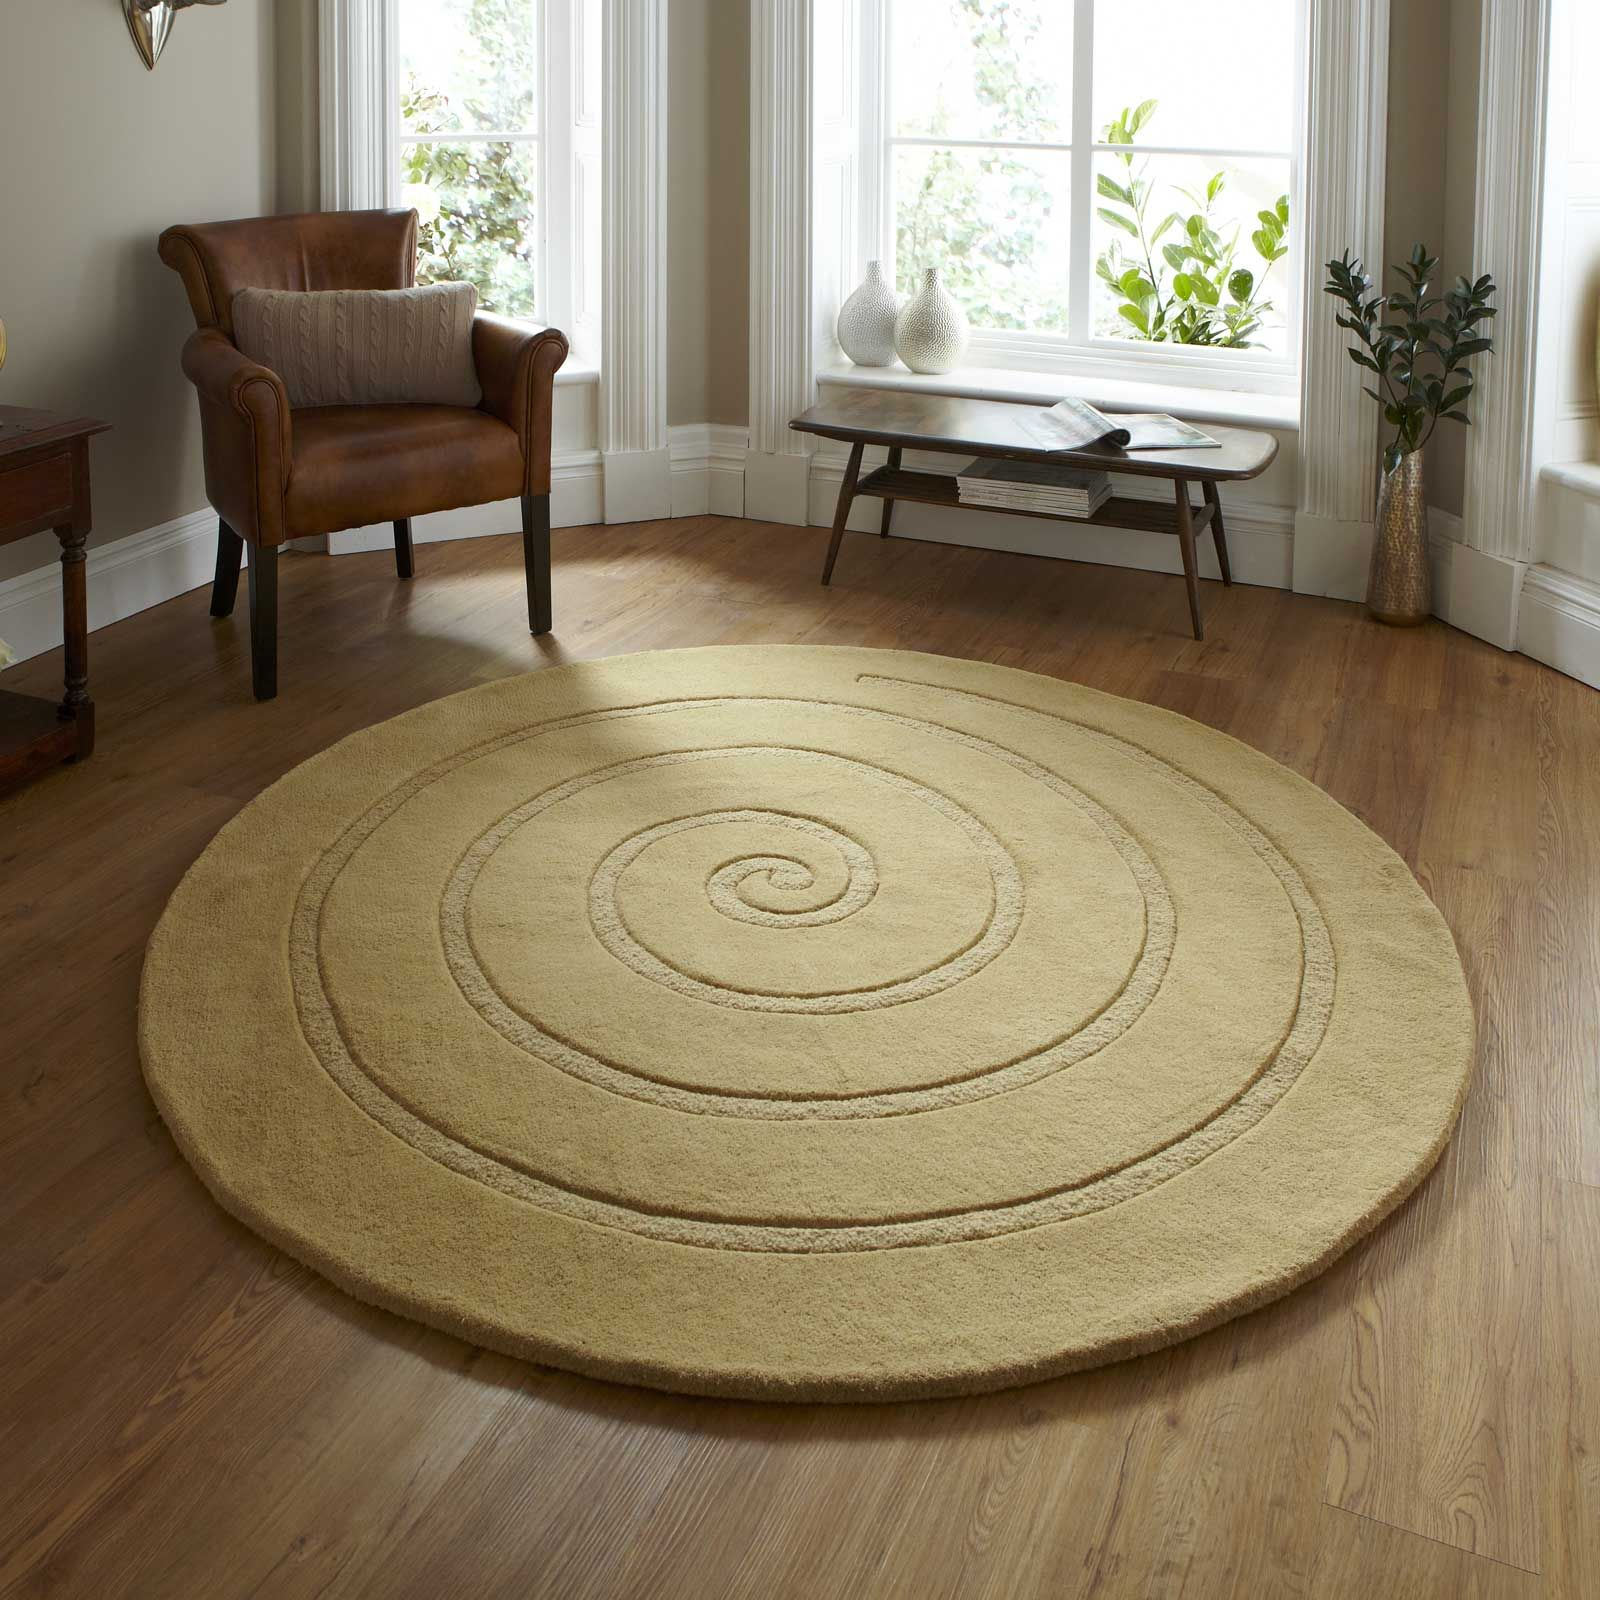 Spiral Circular Wool Rugs In Gold Free Uk Delivery